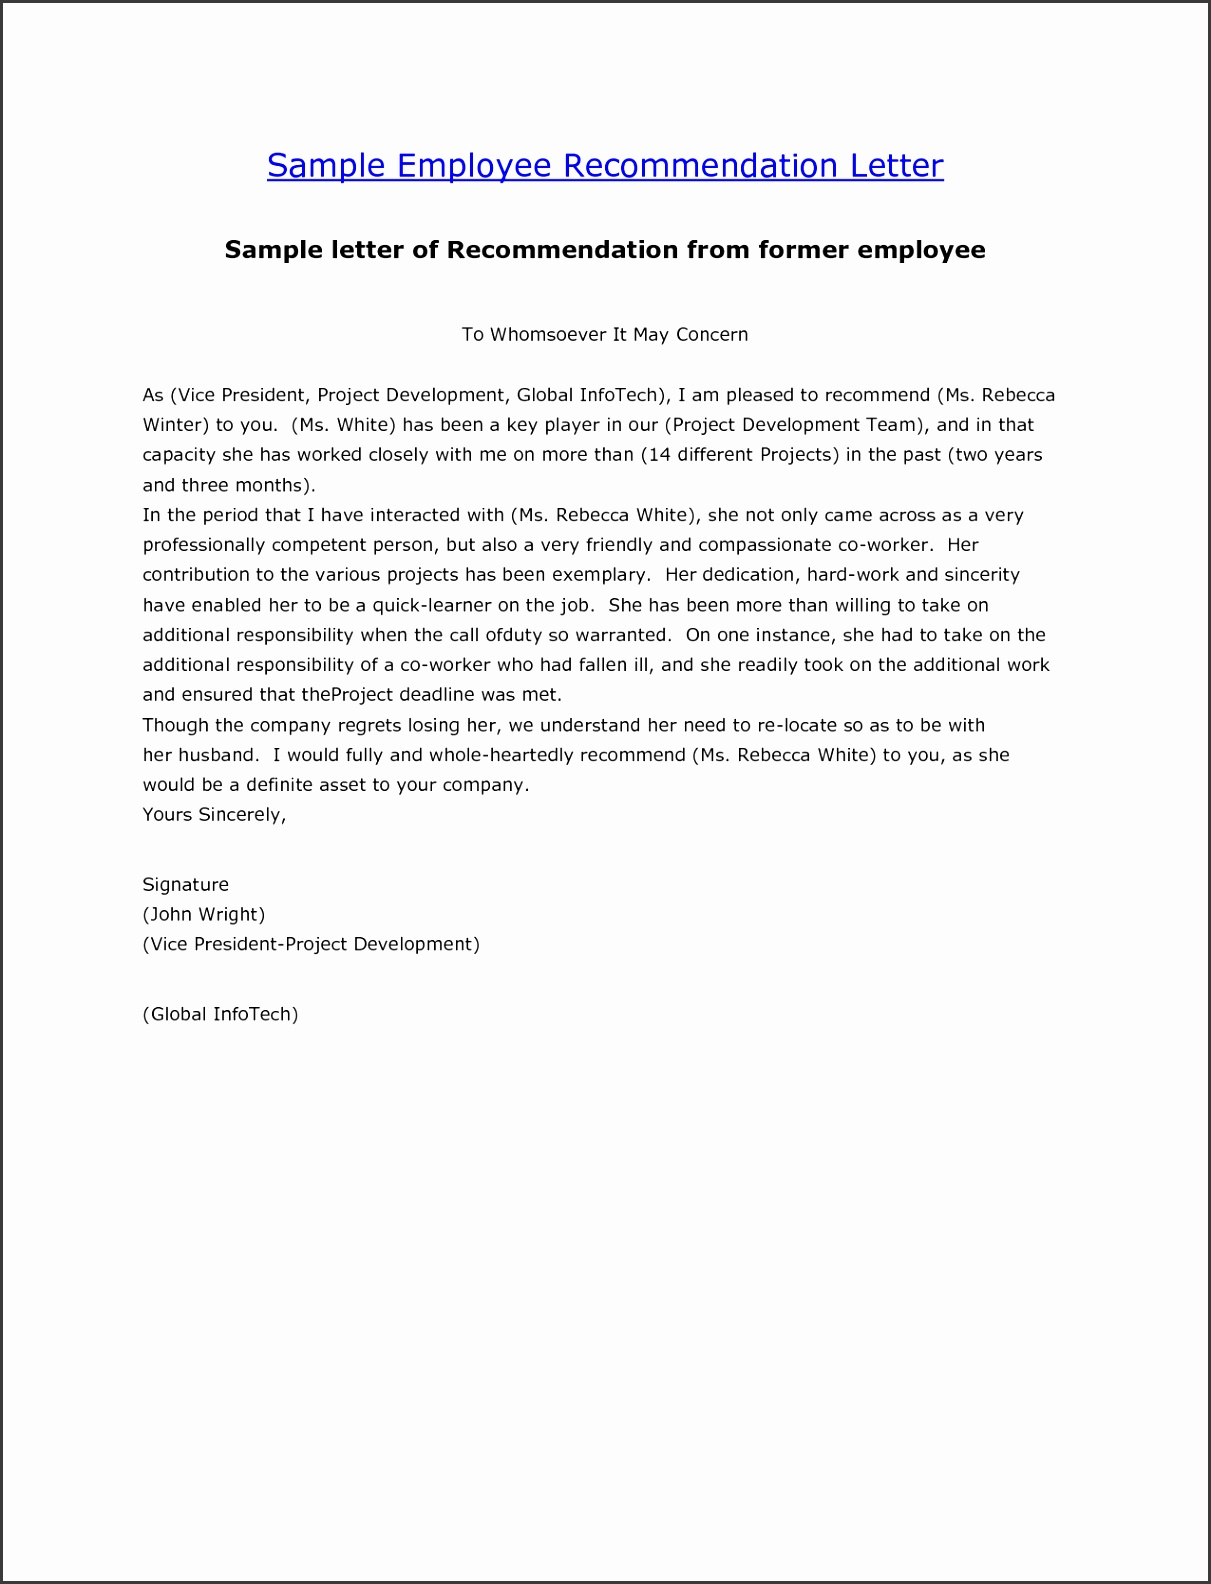 Employment Re mendation Letter Template